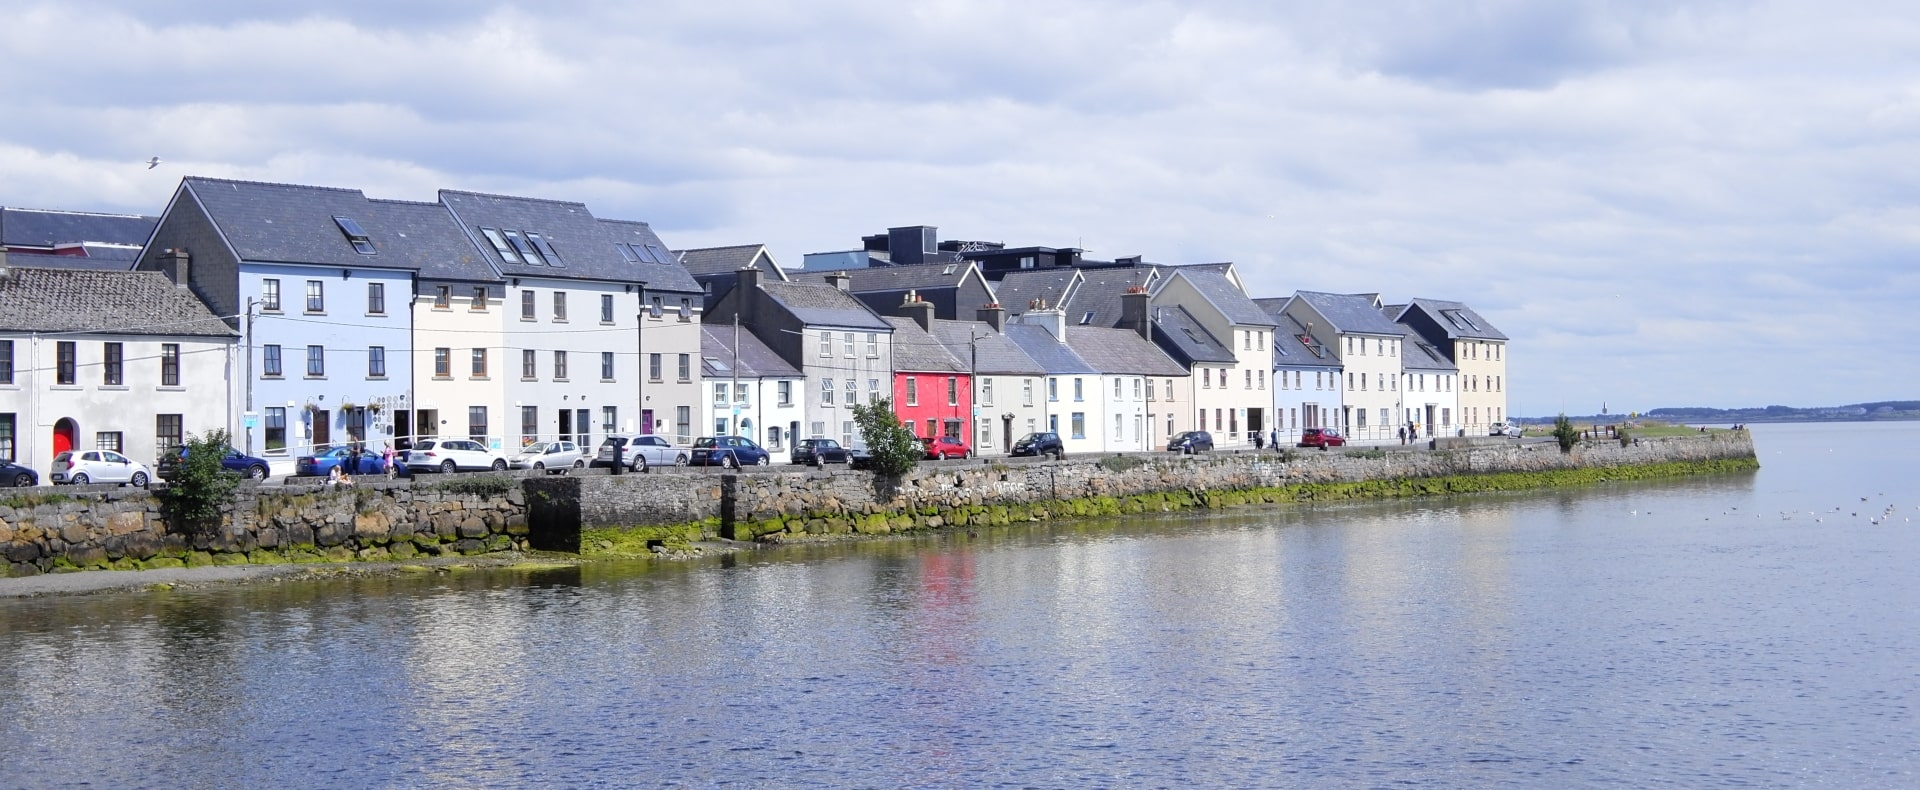 Sightseeing Galway Experience Gallery